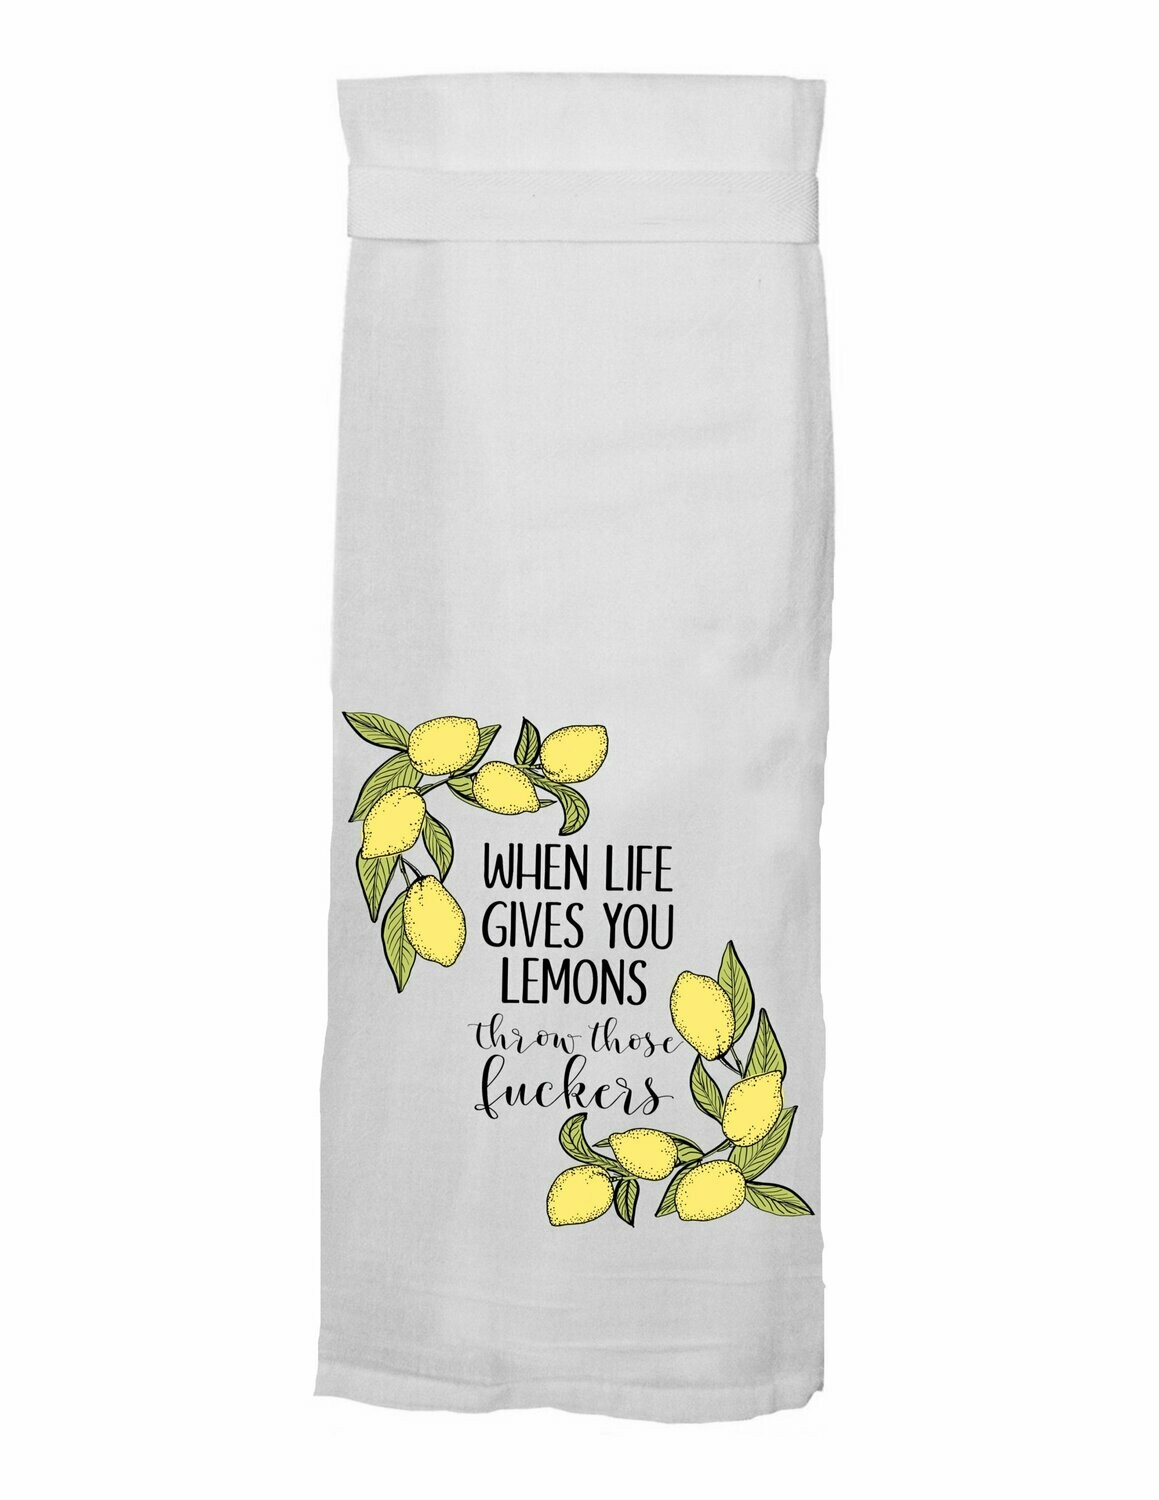 Throw Lemon Hang Tight Towel By Twisted Wares